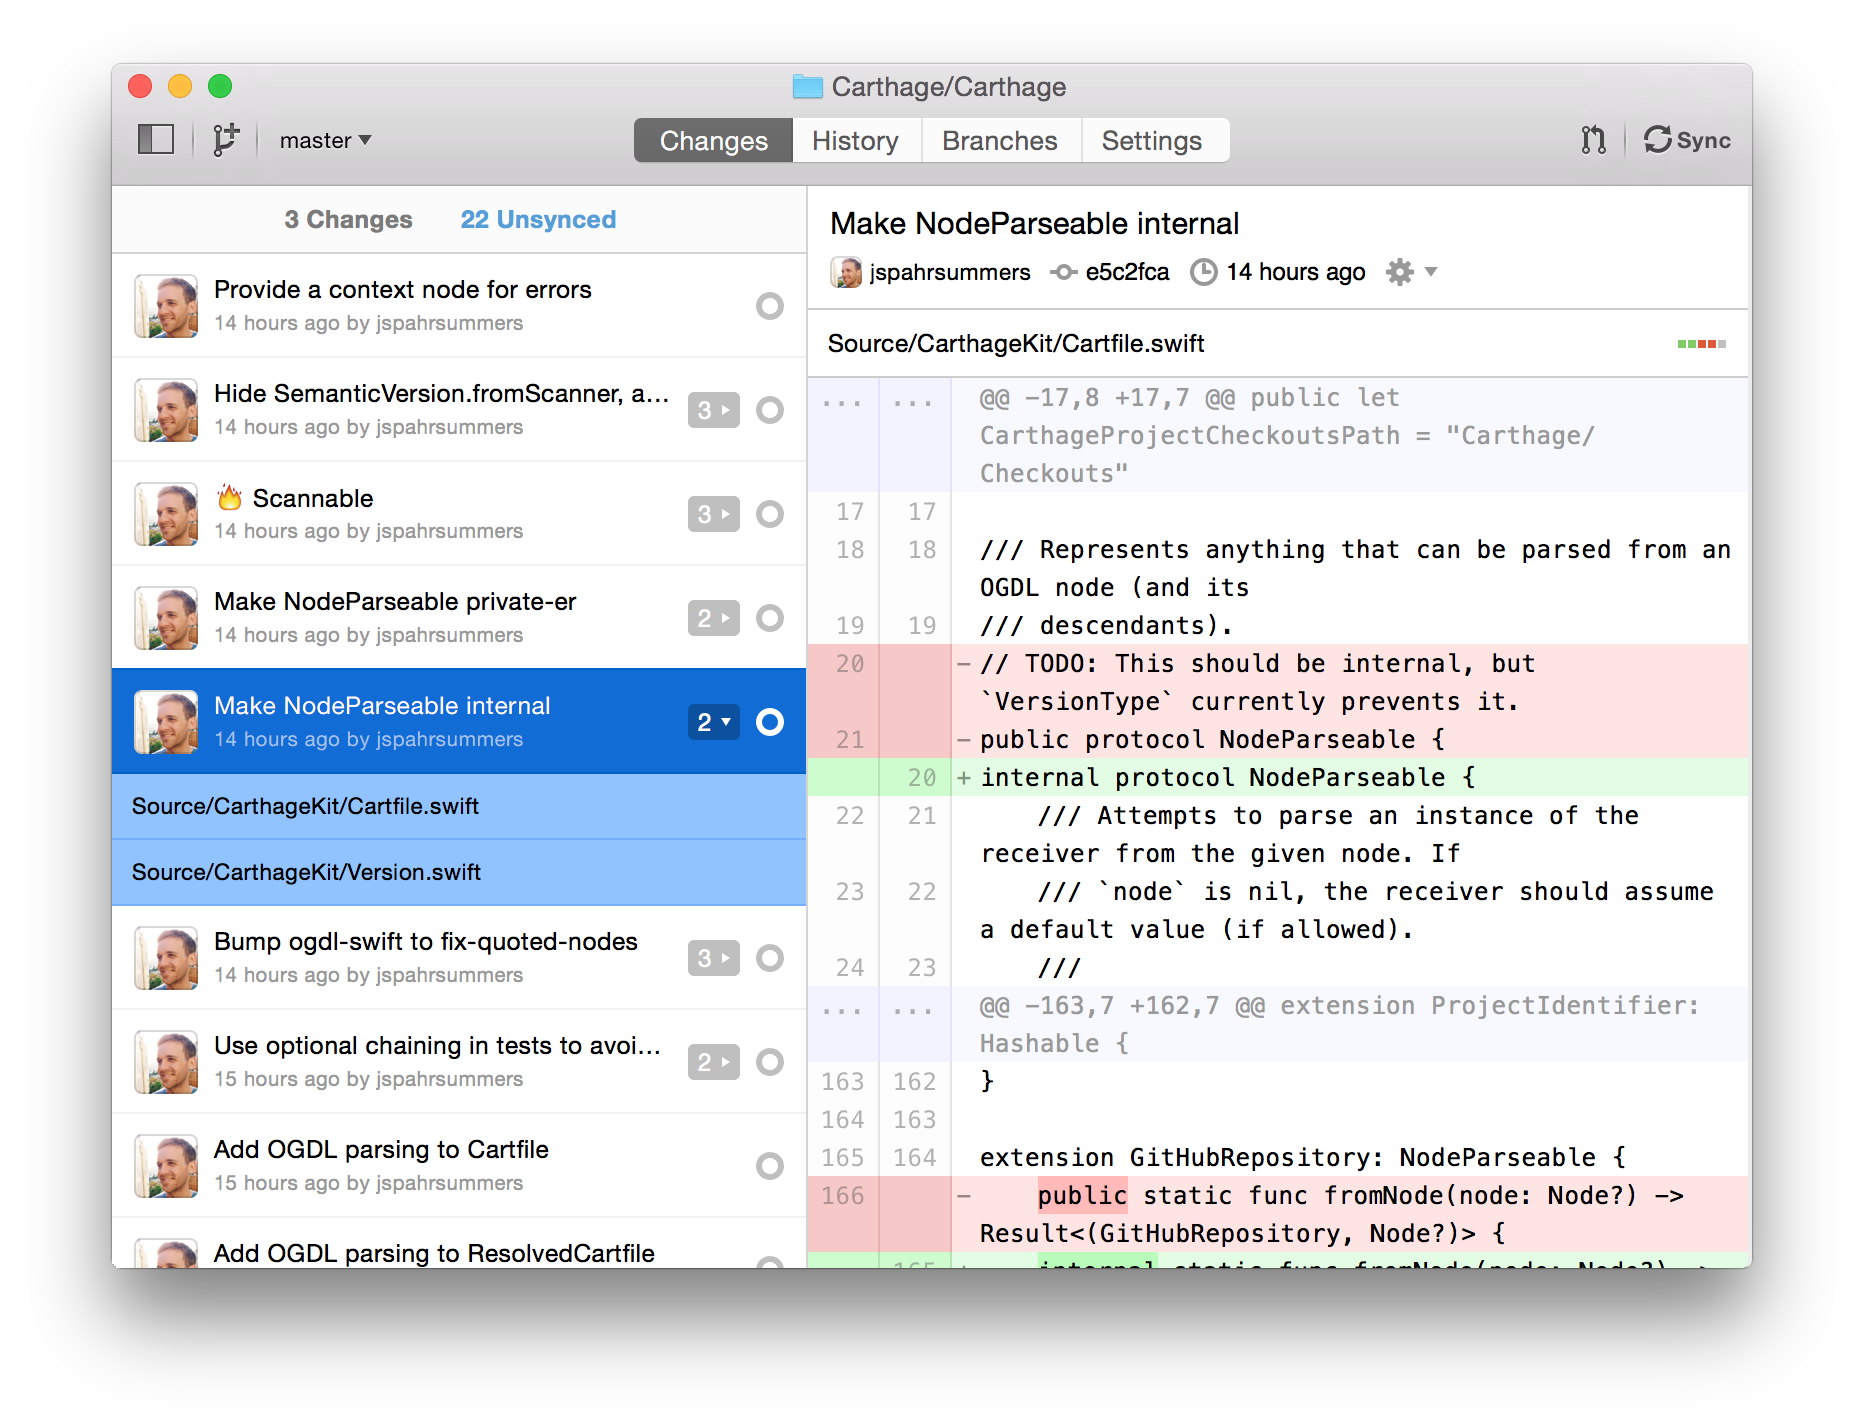 A long list of unsynced commits in GitHub for Mac